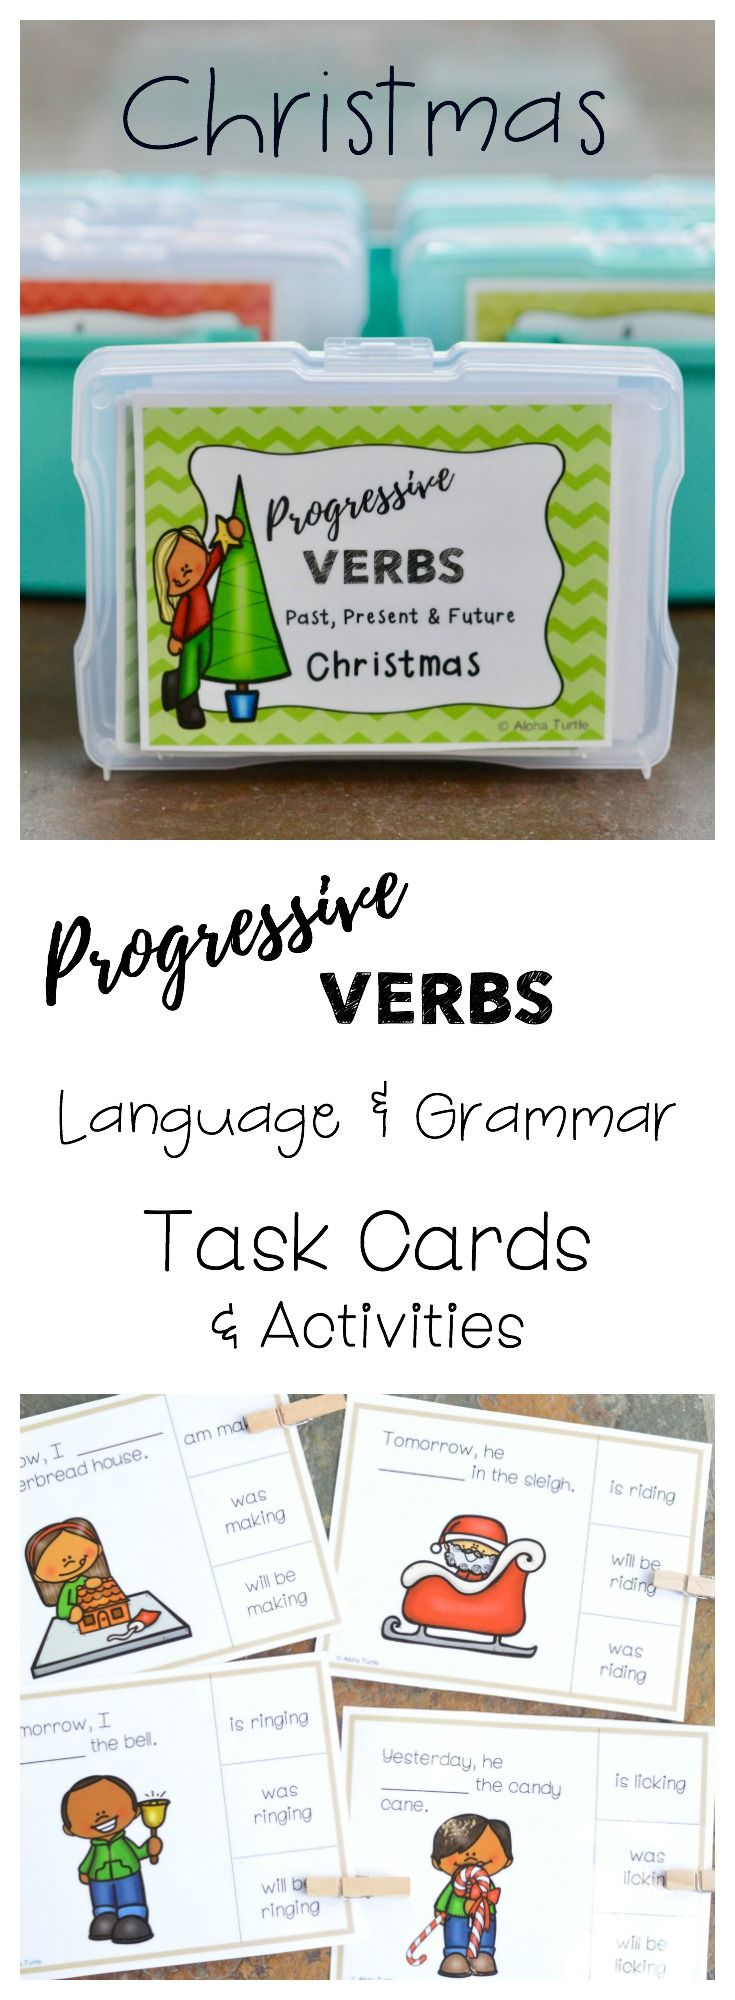 best 25 verb tenses ideas on pinterest tenses english tenses in english grammar and english time. Black Bedroom Furniture Sets. Home Design Ideas